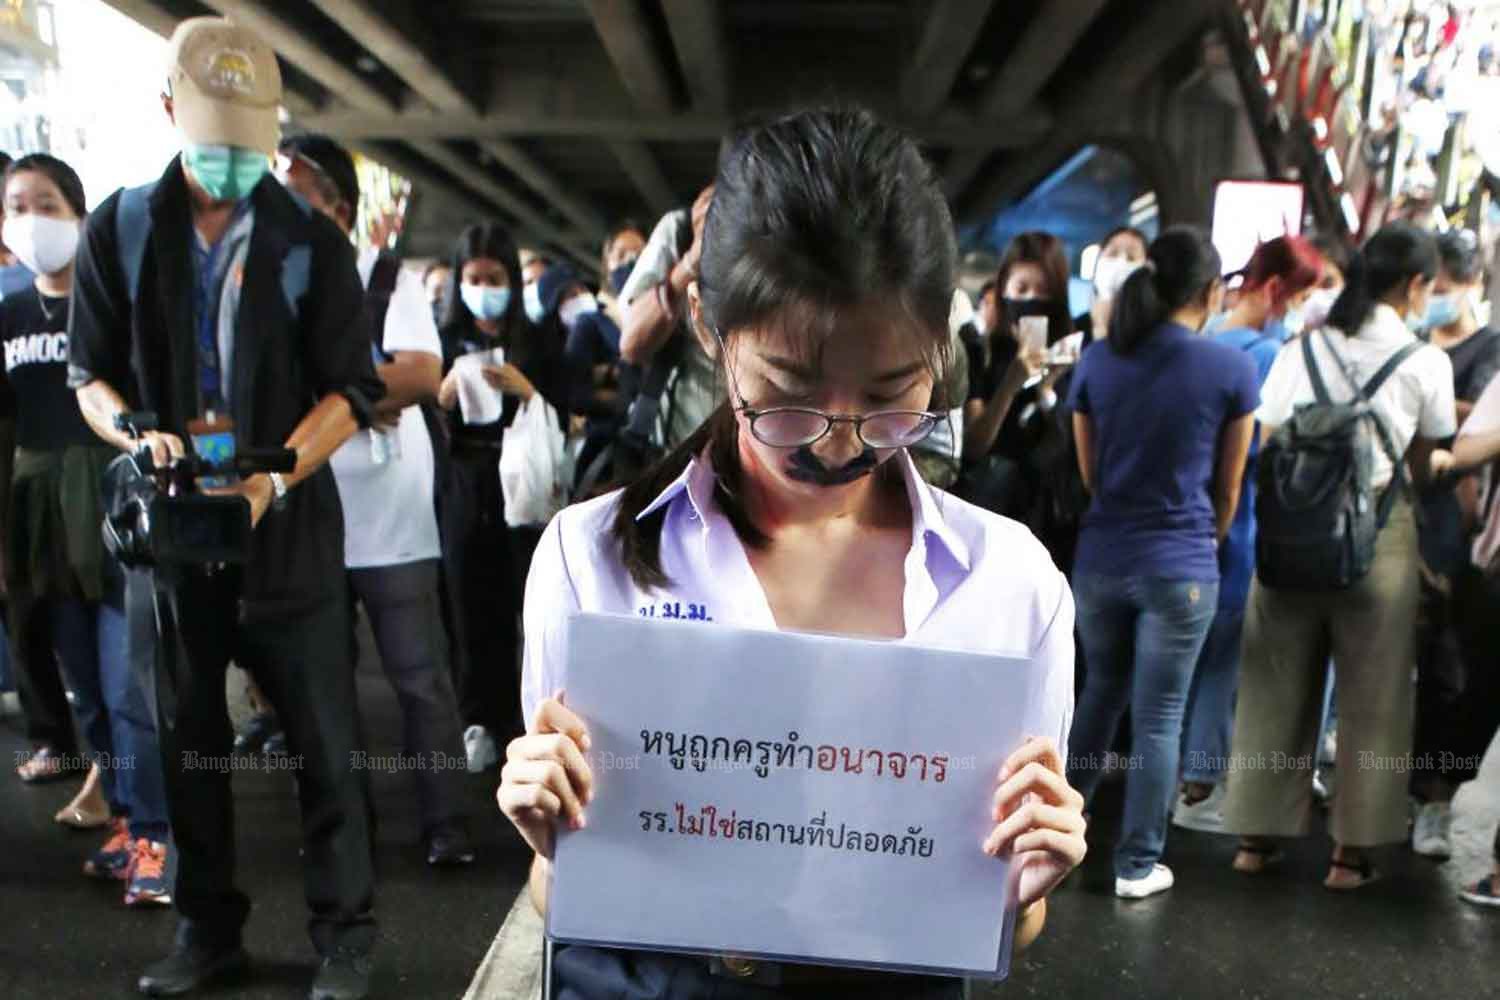 Nalinrat Tuthubthim holds a placard saying: 'A Teacher Committed Sexual Abuse Against Me. Schools Are Not Safe' during a recent protest. (Photo by Apichit Jinakul)